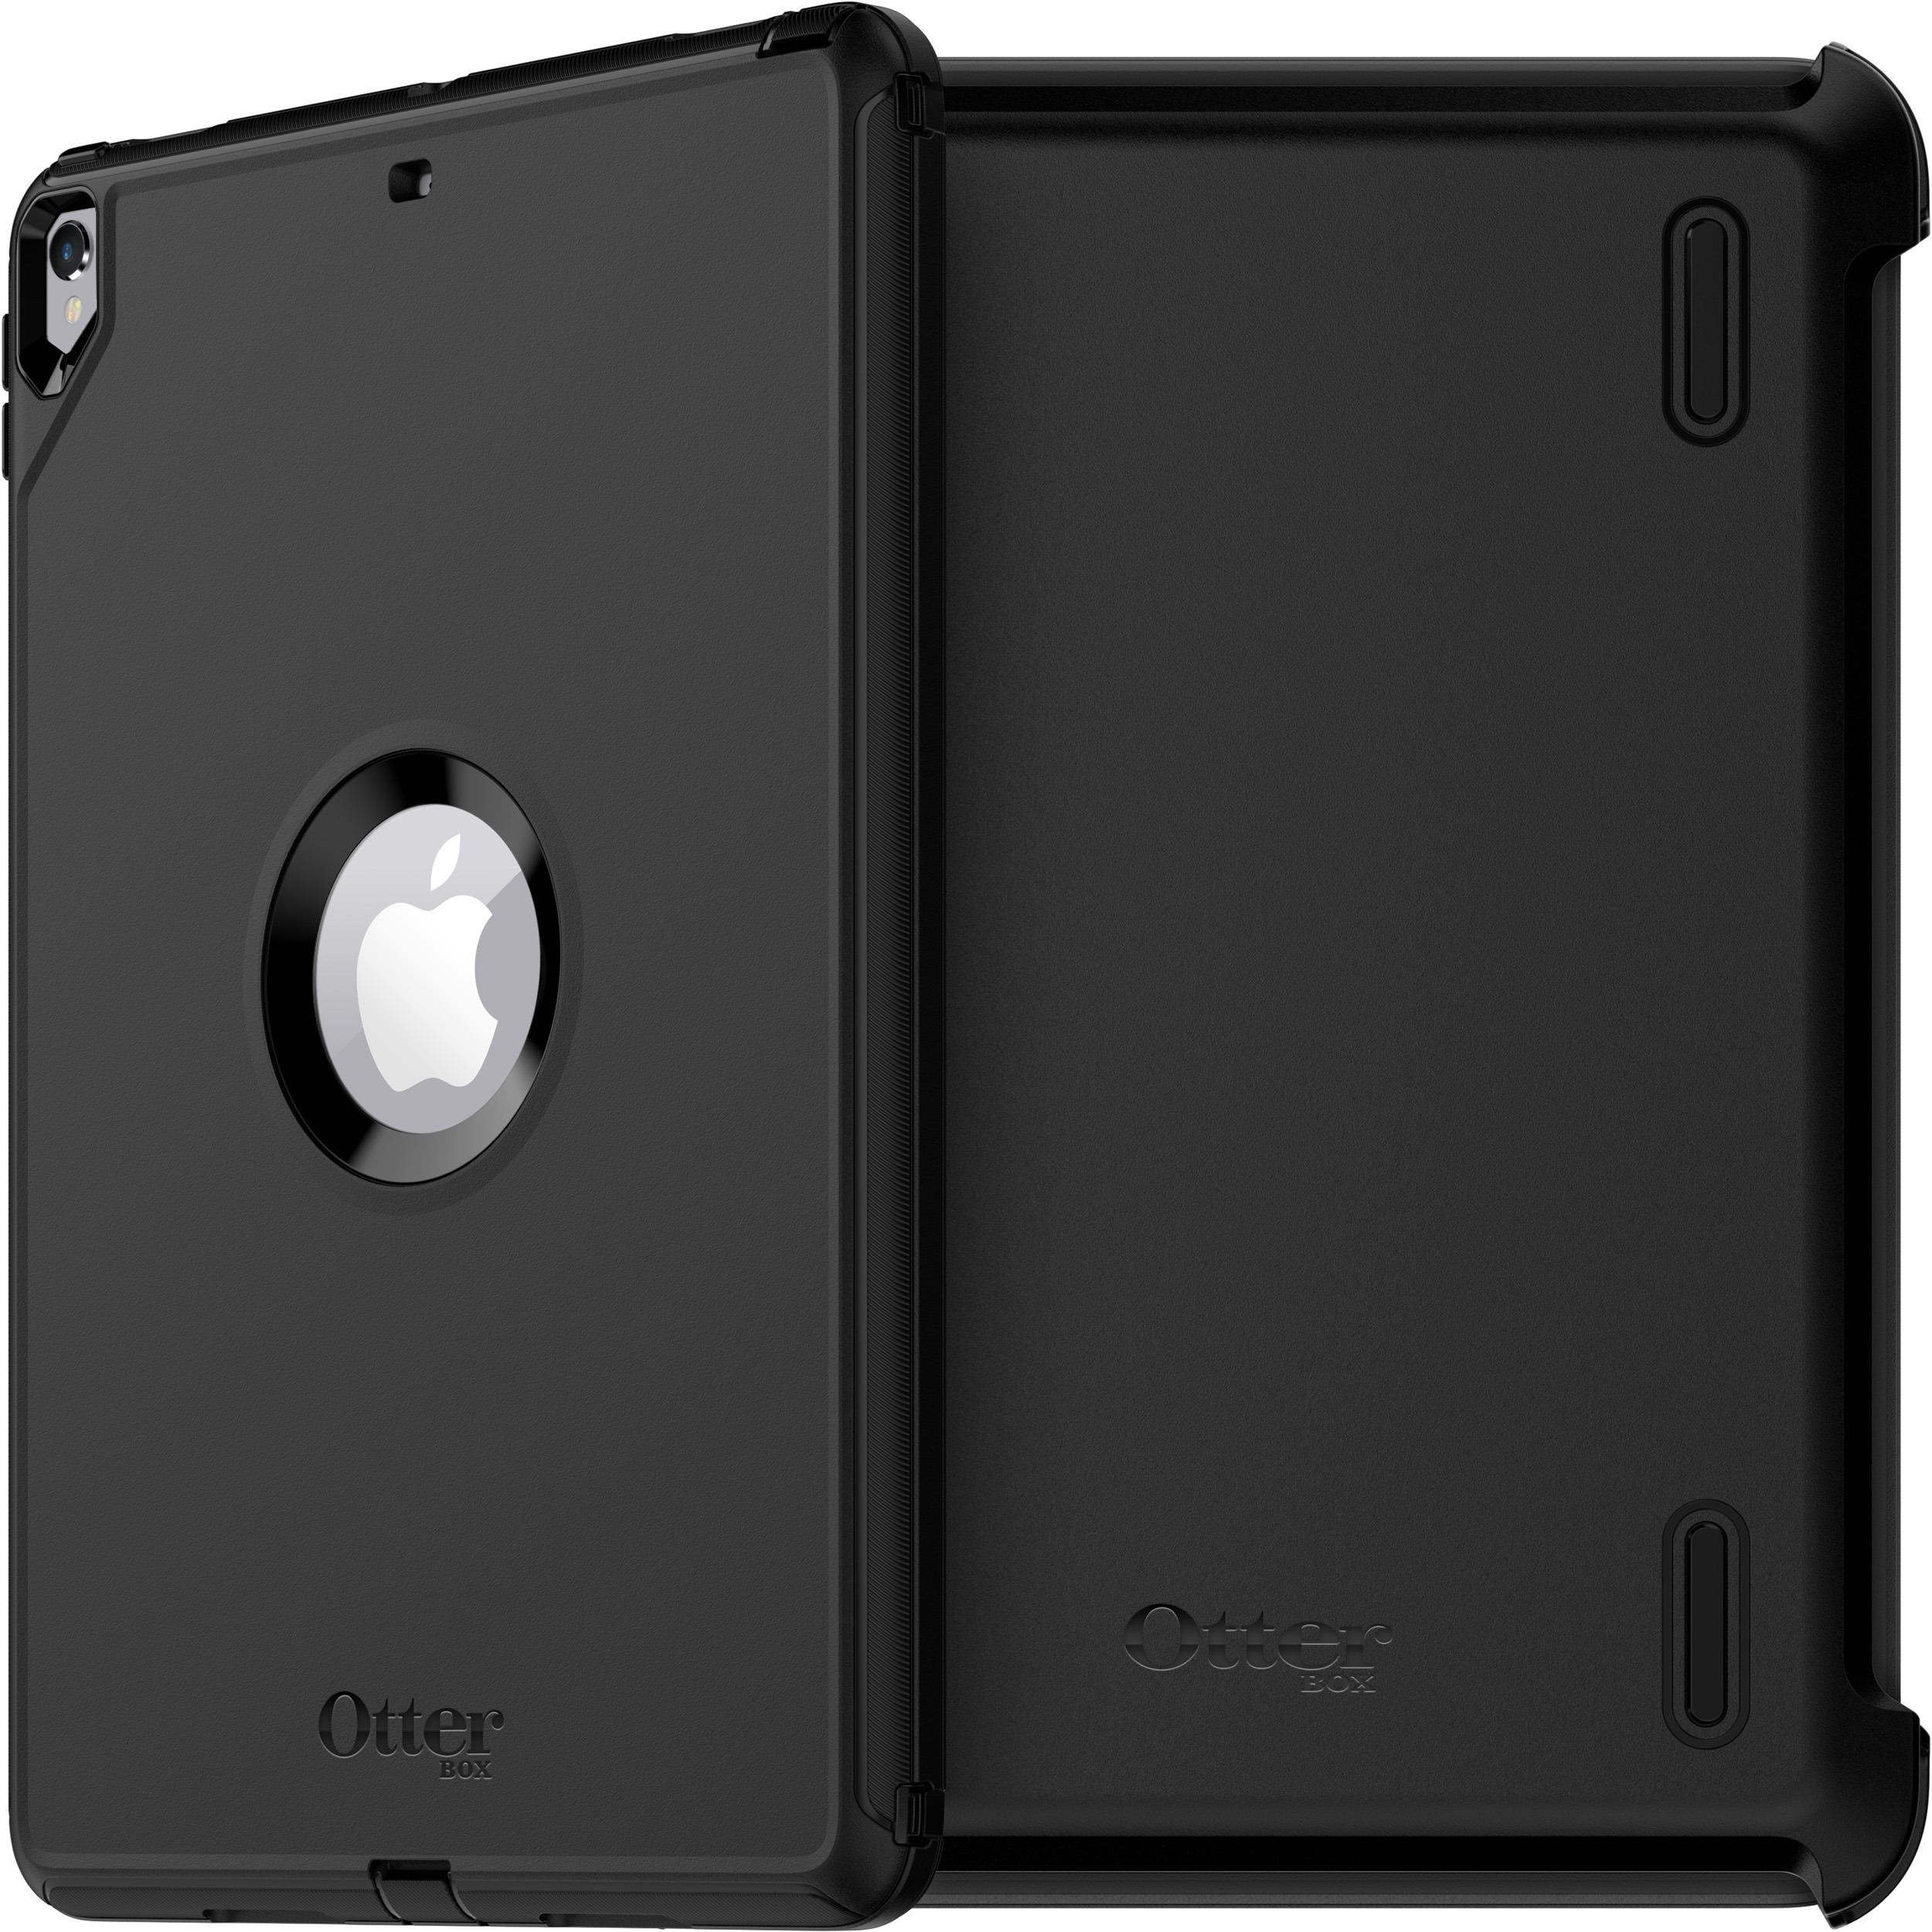 newest 598a2 9ac5e OtterBox iPad Pro 10.5-inch Defender Series Case - iPad Pro - Black -  Polycarbonate, Synthetic Rubber, Polyester 77-55780